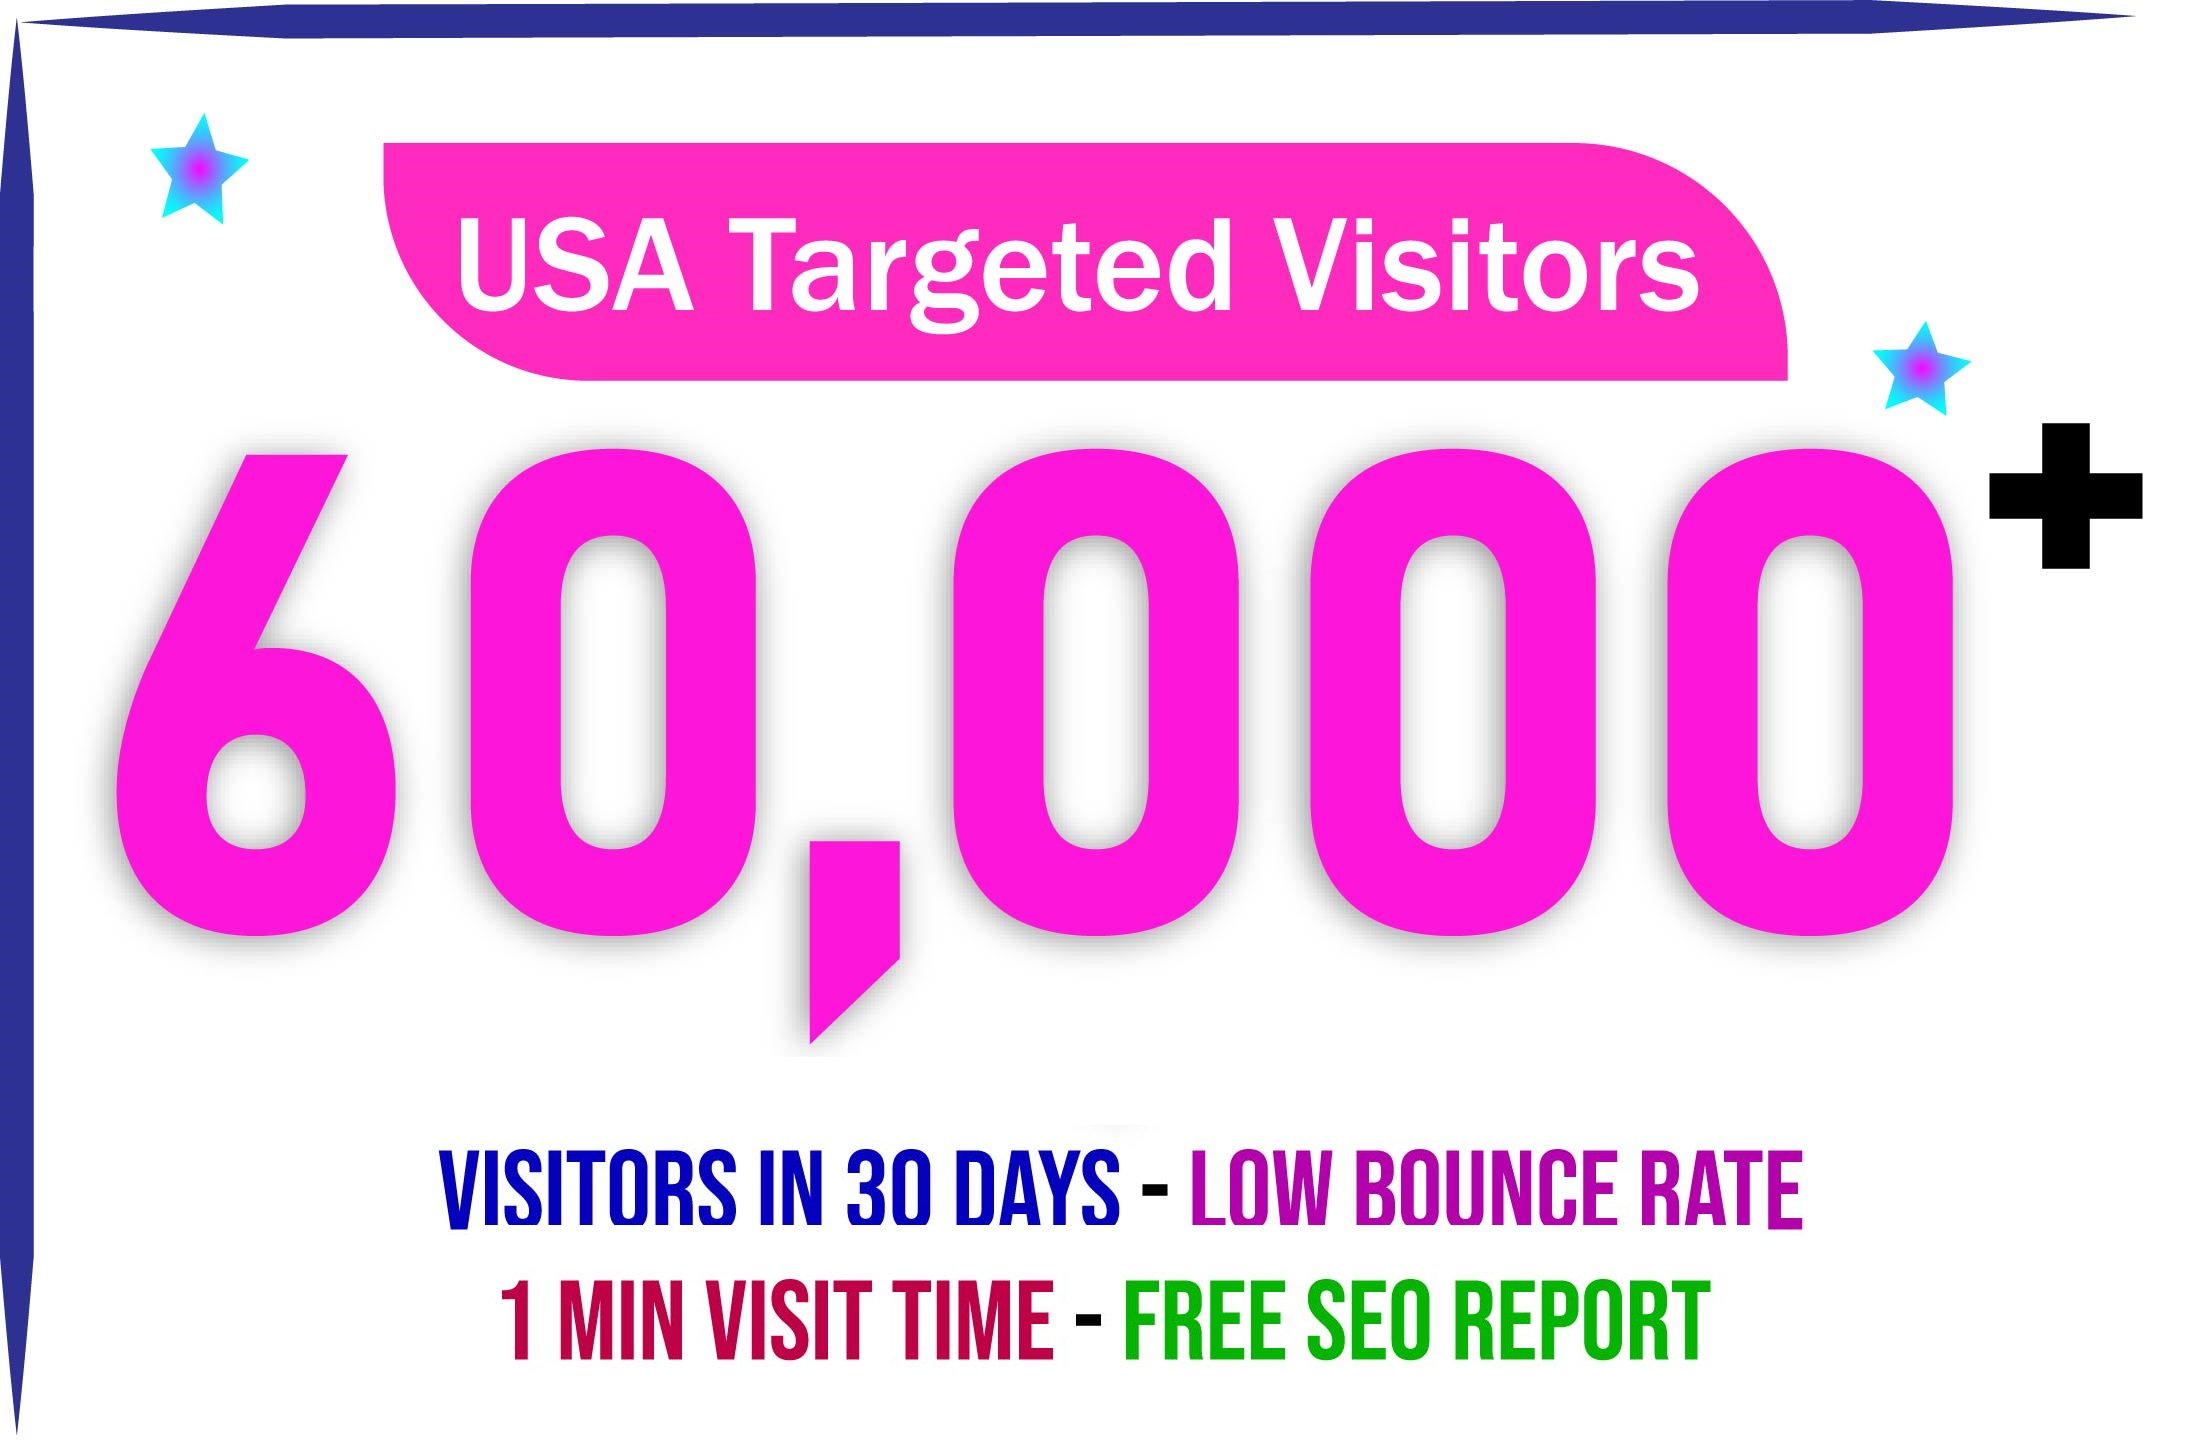 2000+ USA/CANADA daily visitors for 30 days nonstop